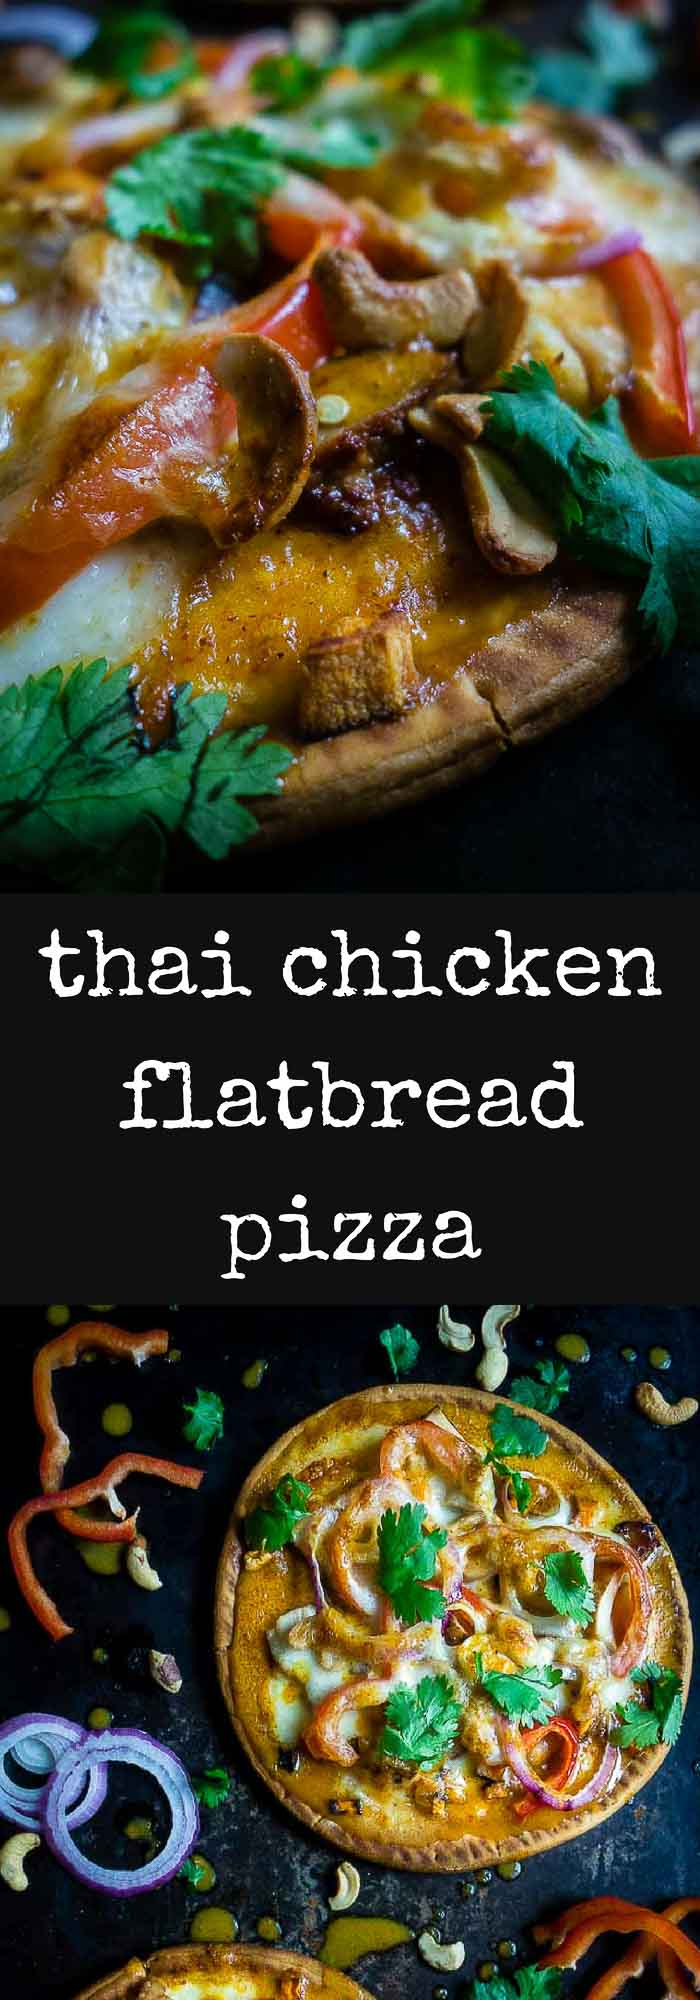 This Thai chicken flatbread pizza is smothered in yellow curry sauce and topped with chicken, vegetables, mozzarella cheese and cashews for a unique twist!cashew chicken flatbread | flatbread pizza | thai marinade | thai chicken flatbread | thai yellow curry | thai pita pizza | thai chicken pizza | pita pizza with curry sauce | curry pizza | spicy thai pizza | spicy peanut sauce | creamy pizza sauce | best pizza recipe | 20 minute meals